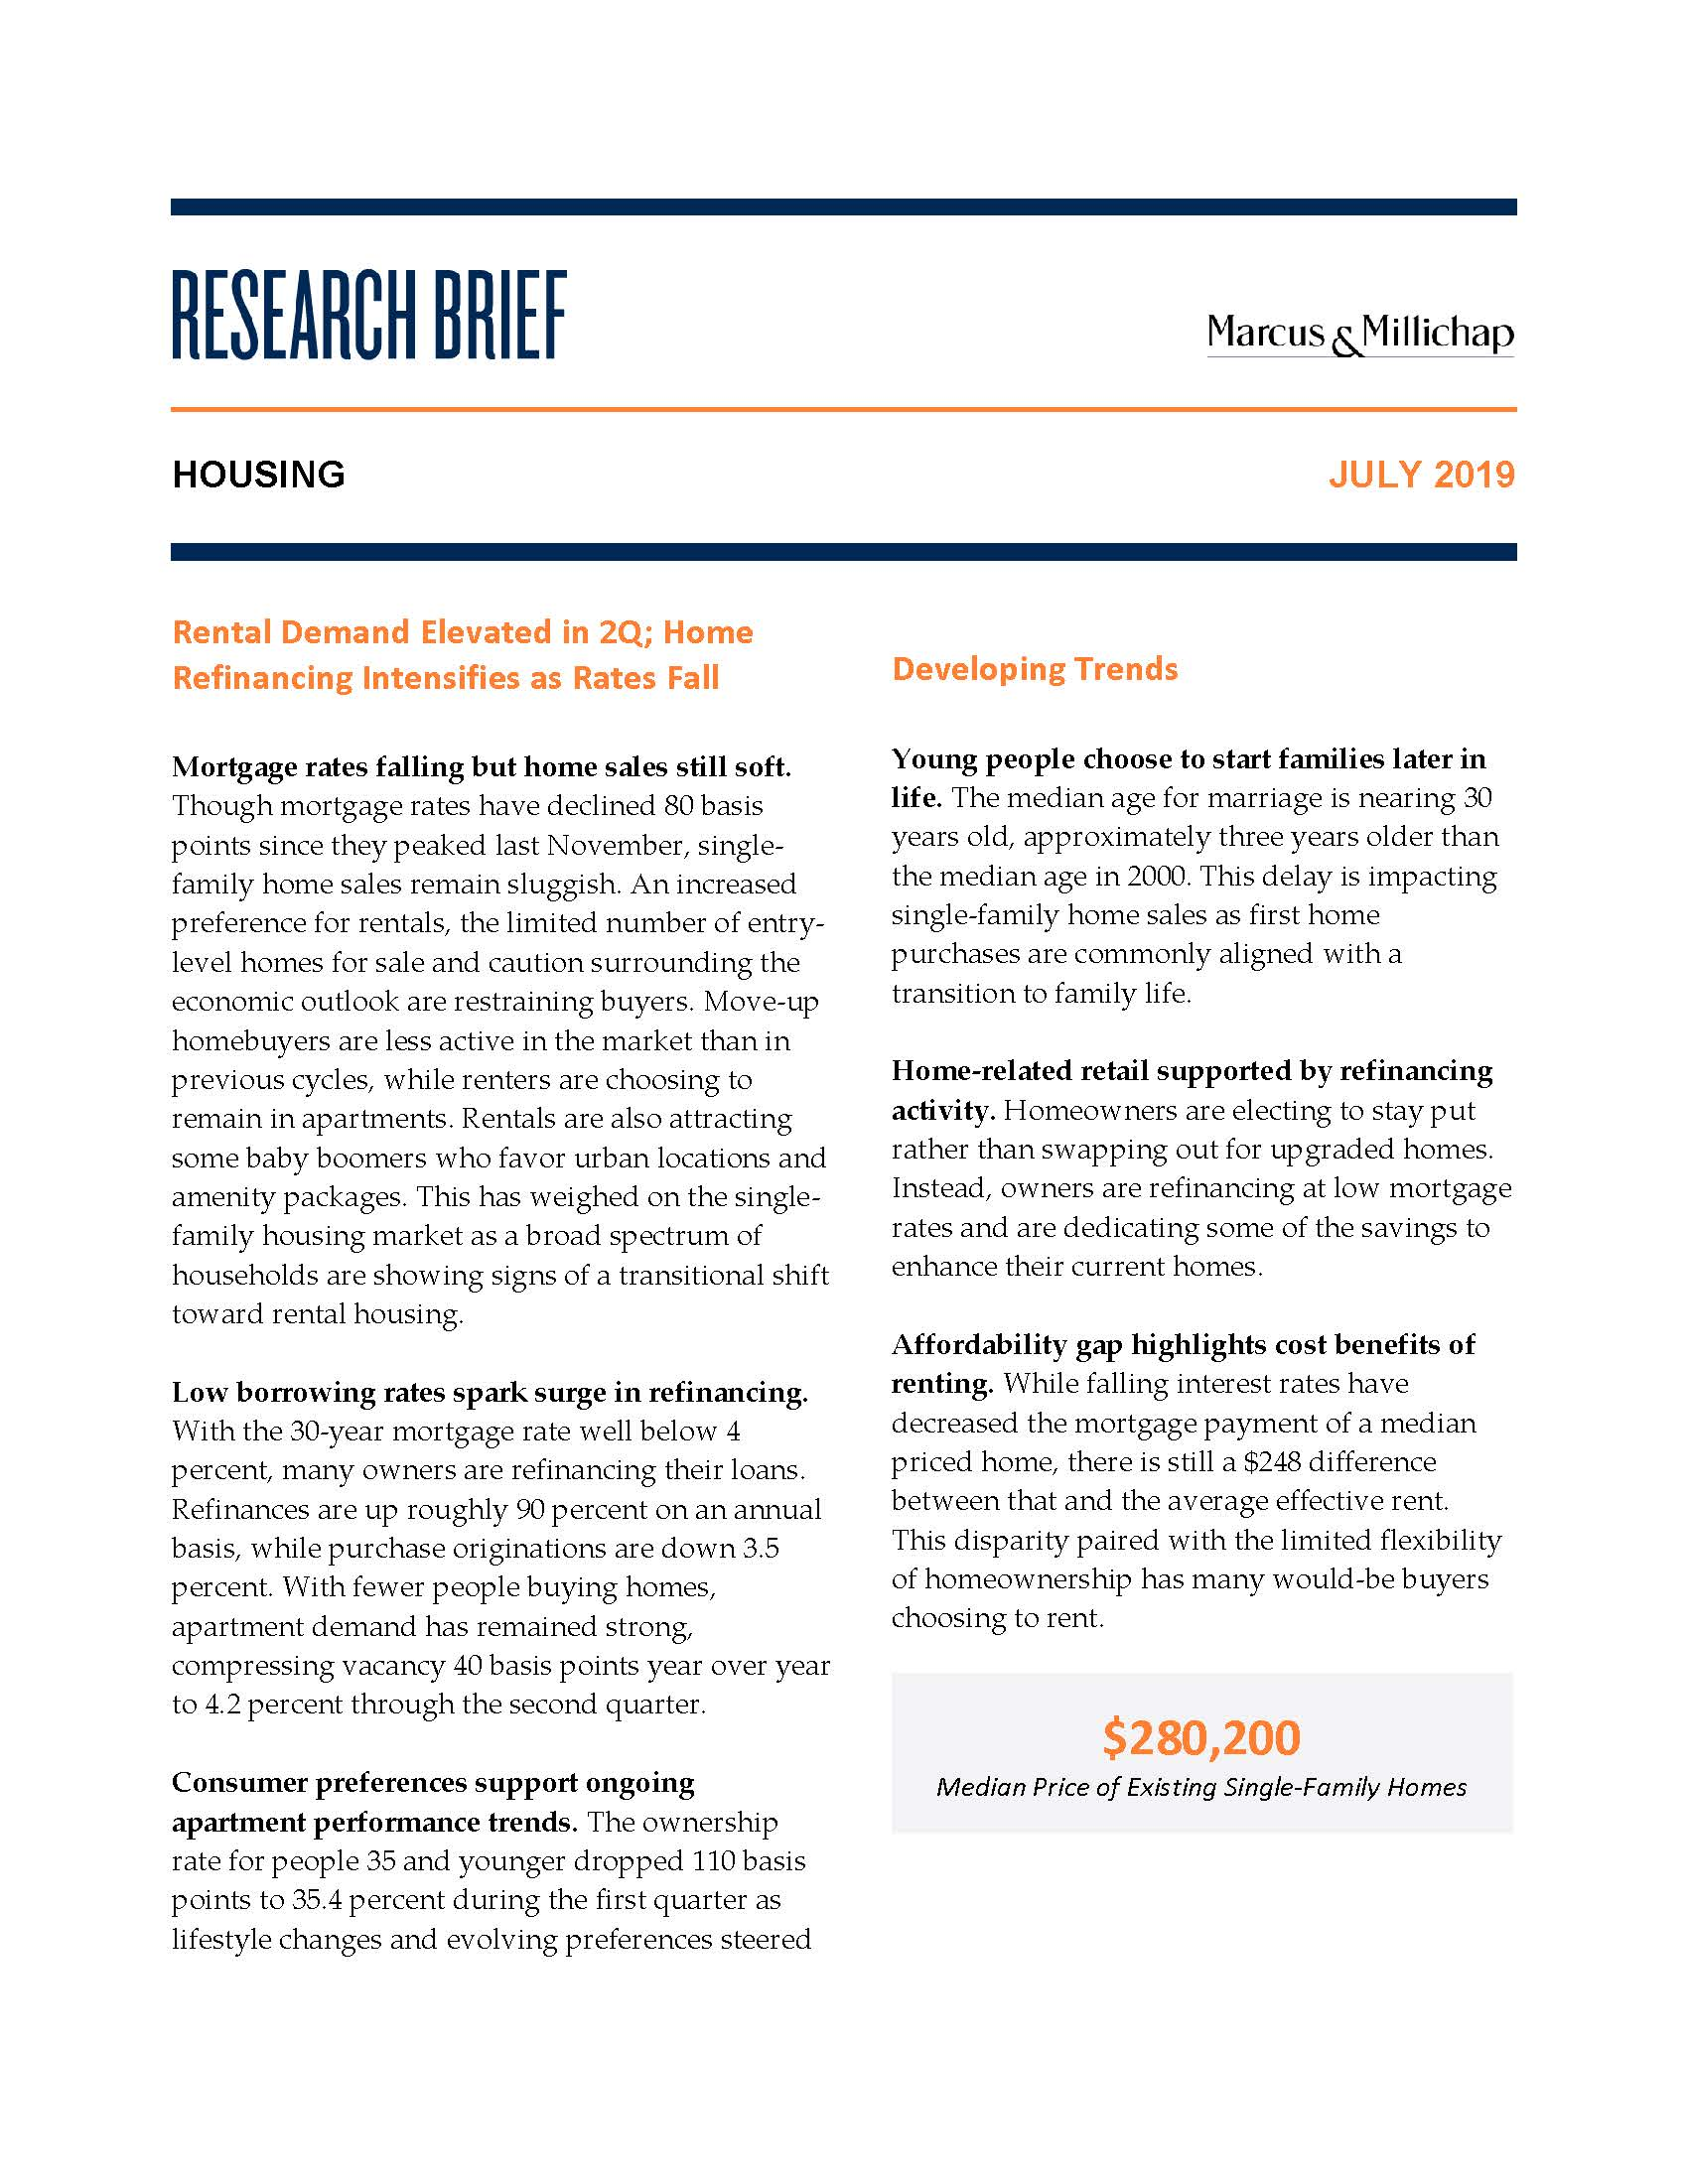 Research Brief - July 2019Housing - Mortgage rates falling but home sales still soft. Though mortgage rates have declined 80 basis points since they peaked last November, single-family home sales remain sluggish. An increased preference for rentals, the limited number of entry-level homes for sale and caution surrounding the economic outlook are restraining buyers.